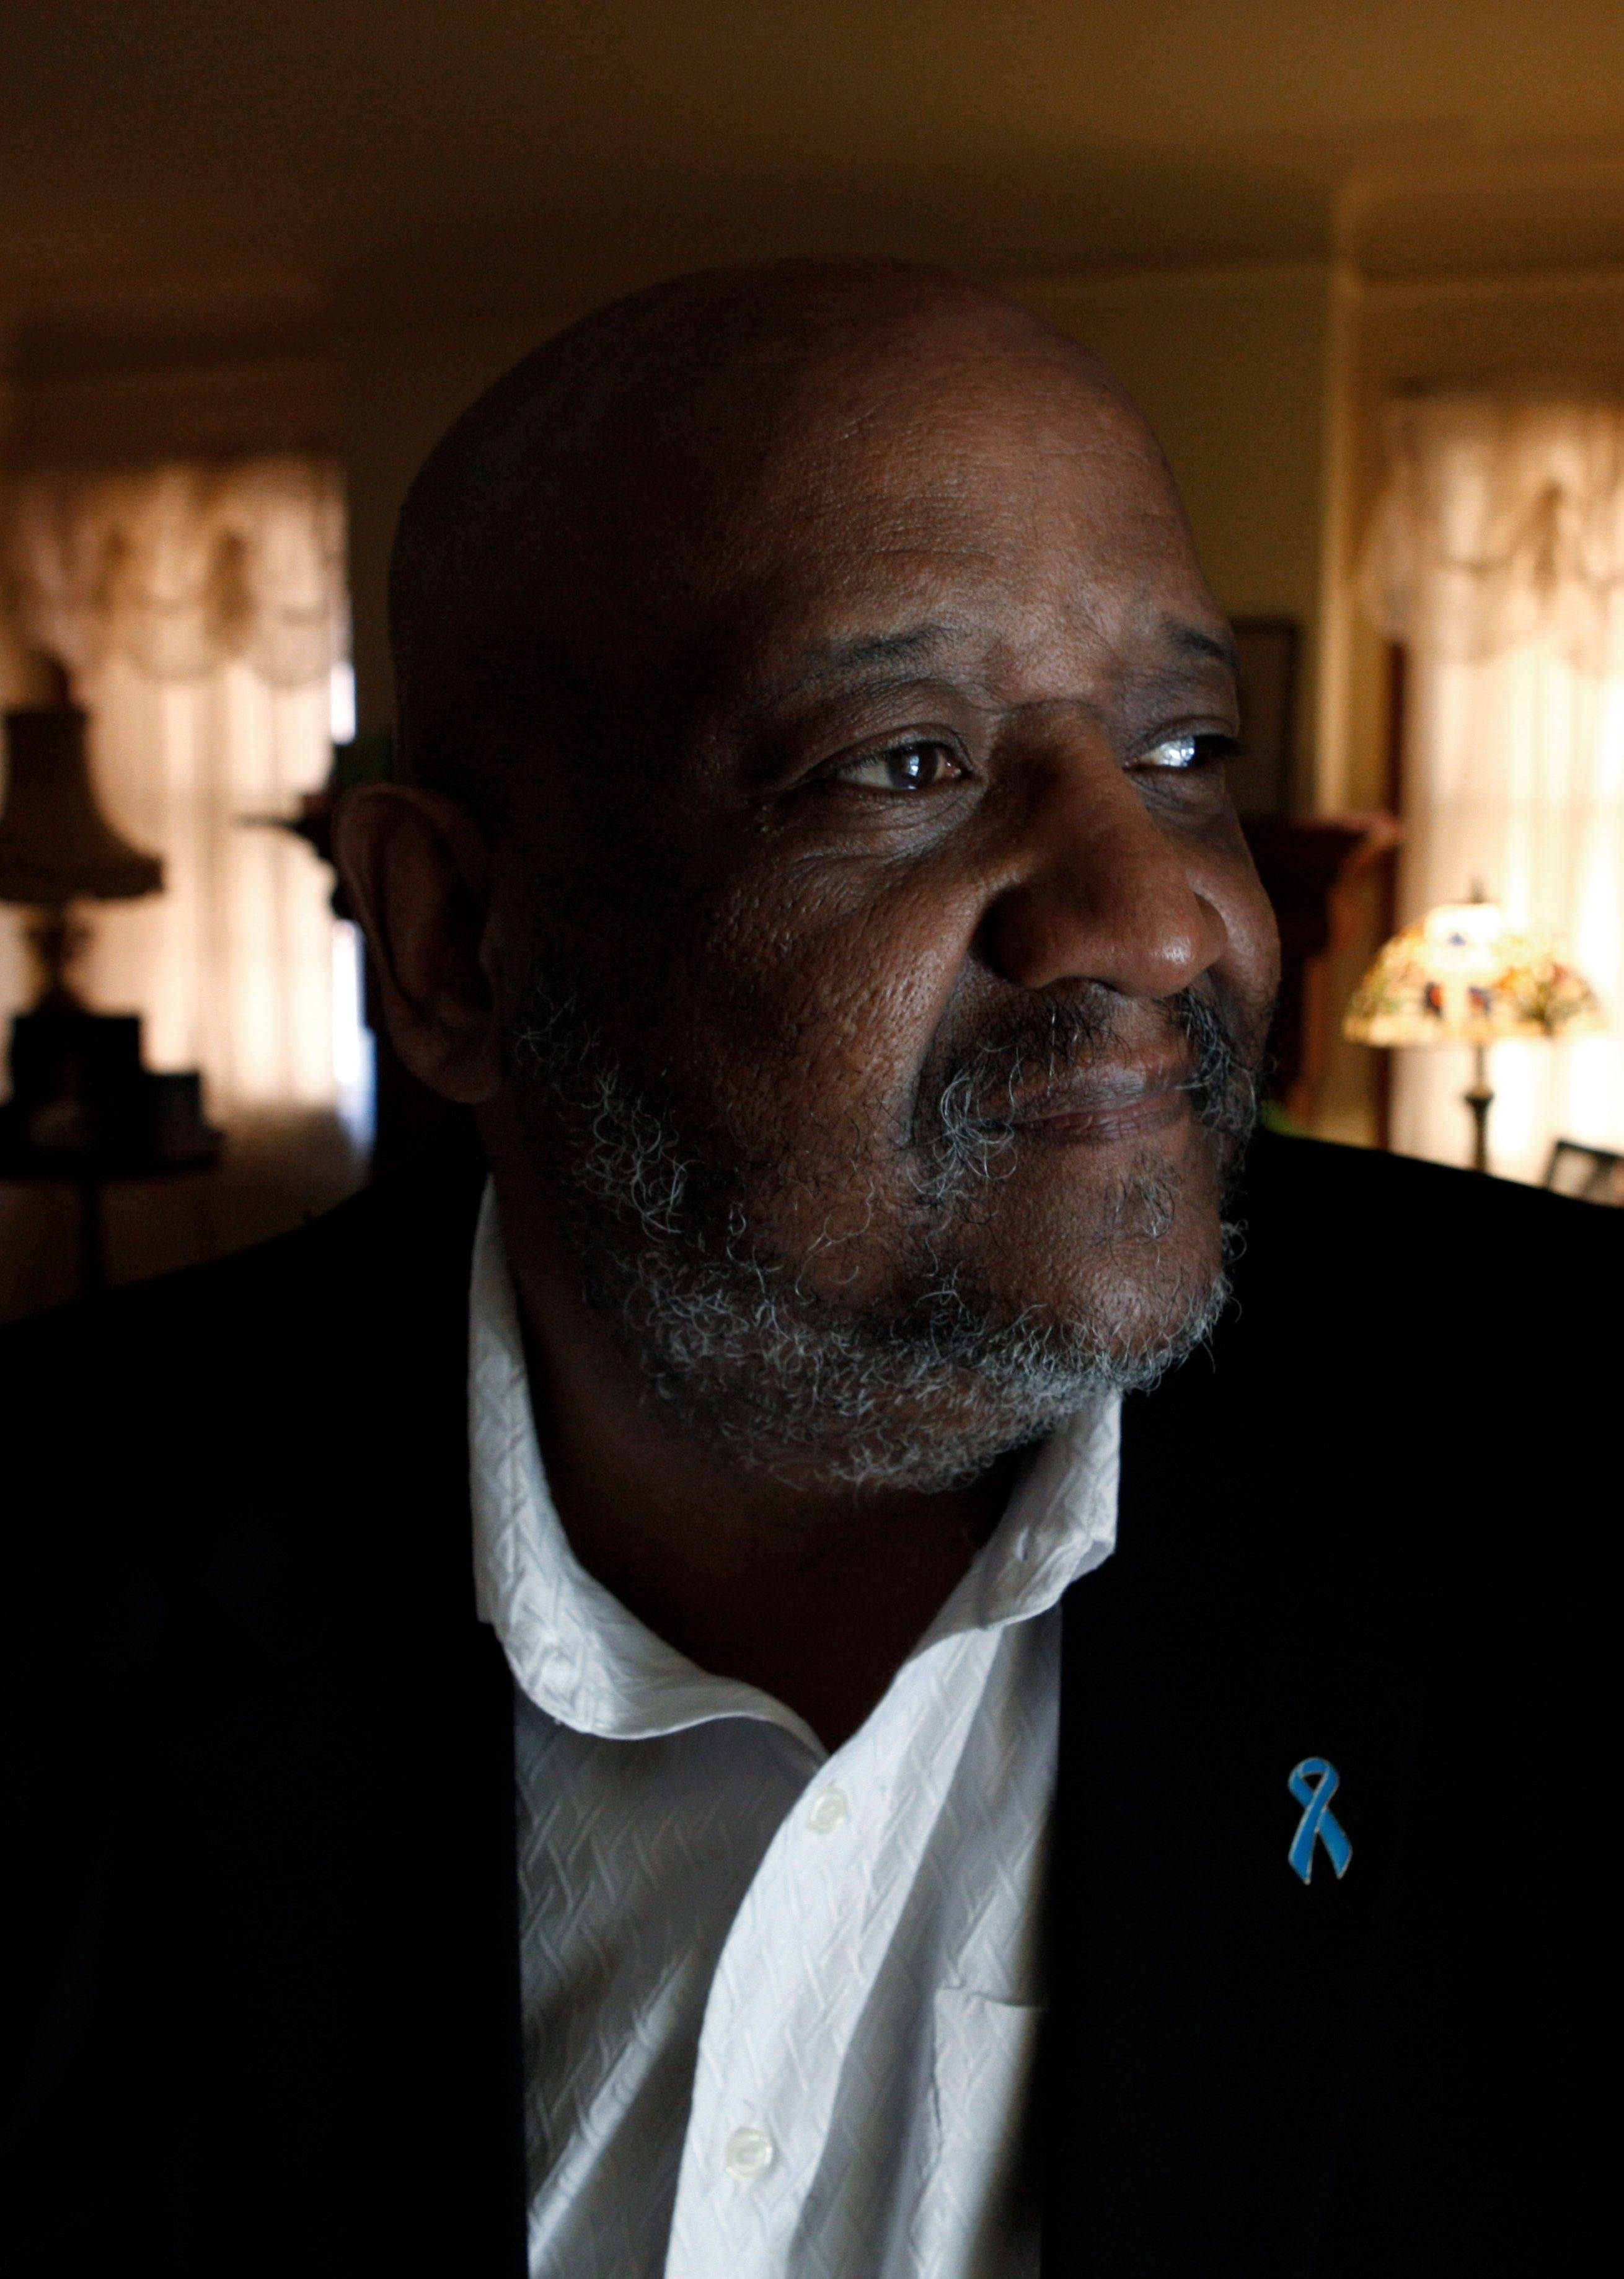 Jerry Hardy, 57, of Detroit had nerve-sparing surgery for prostate cancer in 2000 and lost sexual function. He eventually opted for a penile implant.